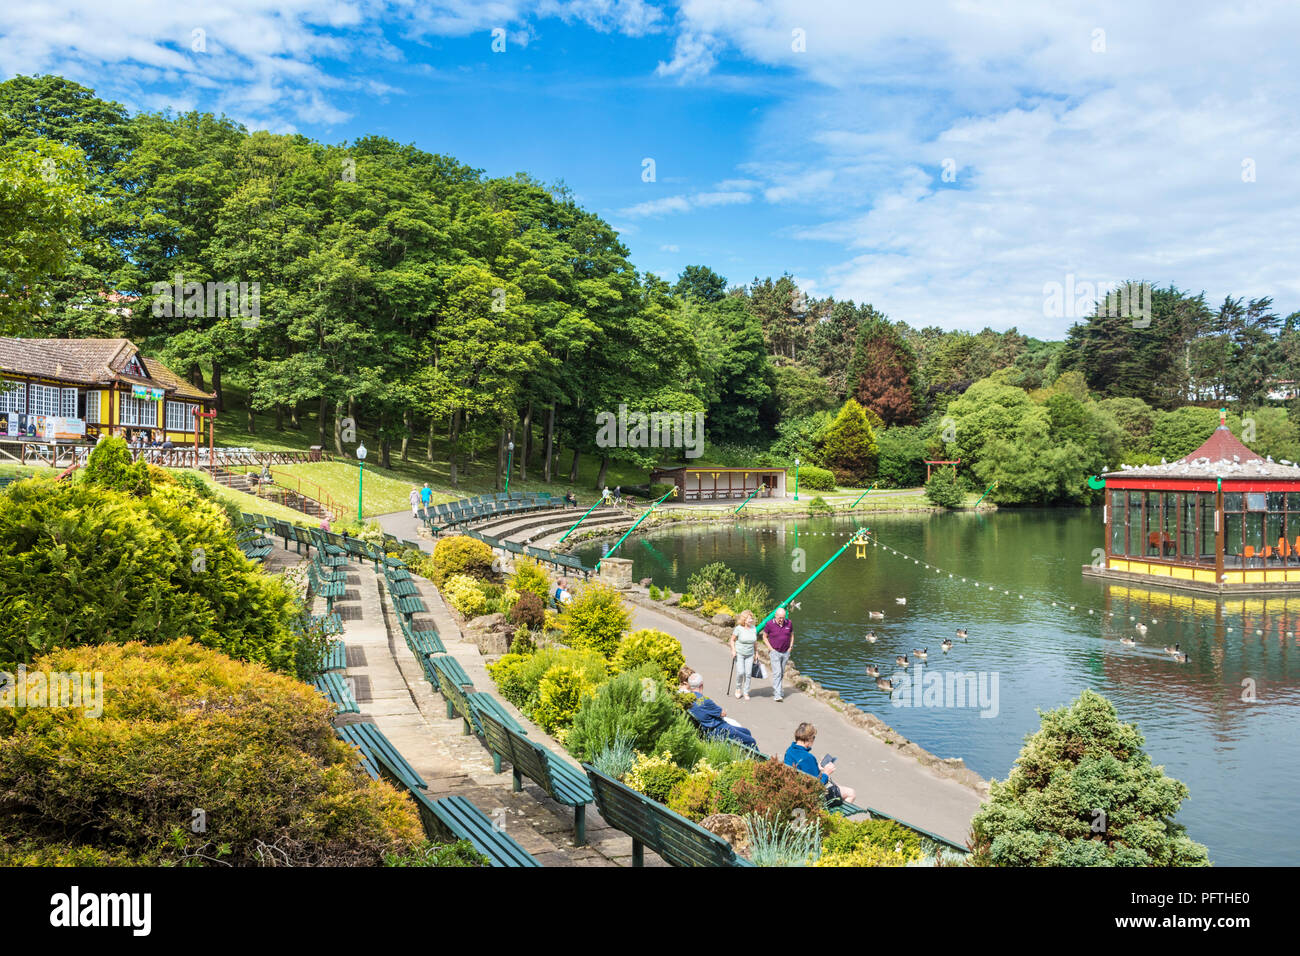 Peasholm park Scarborough uk with bandstand in the lake Scarborough yorkshire england uk gb europe - Stock Image